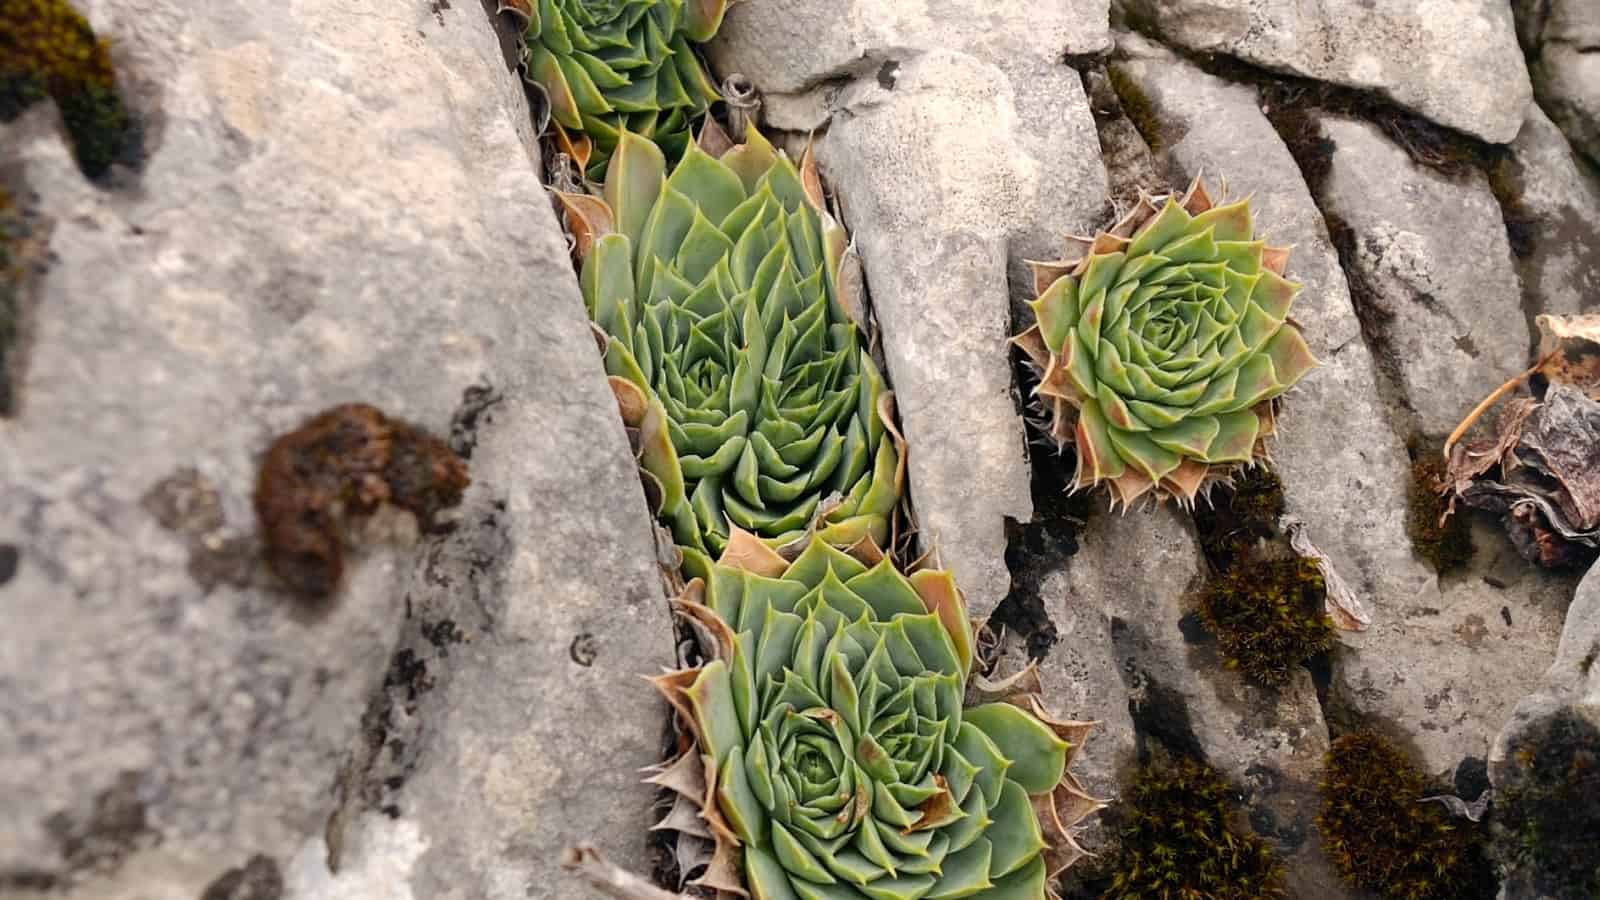 Hen-and-chickens (Sempervivum heuffelii Schott) - photo: Vrachanski Balkan Nature Park